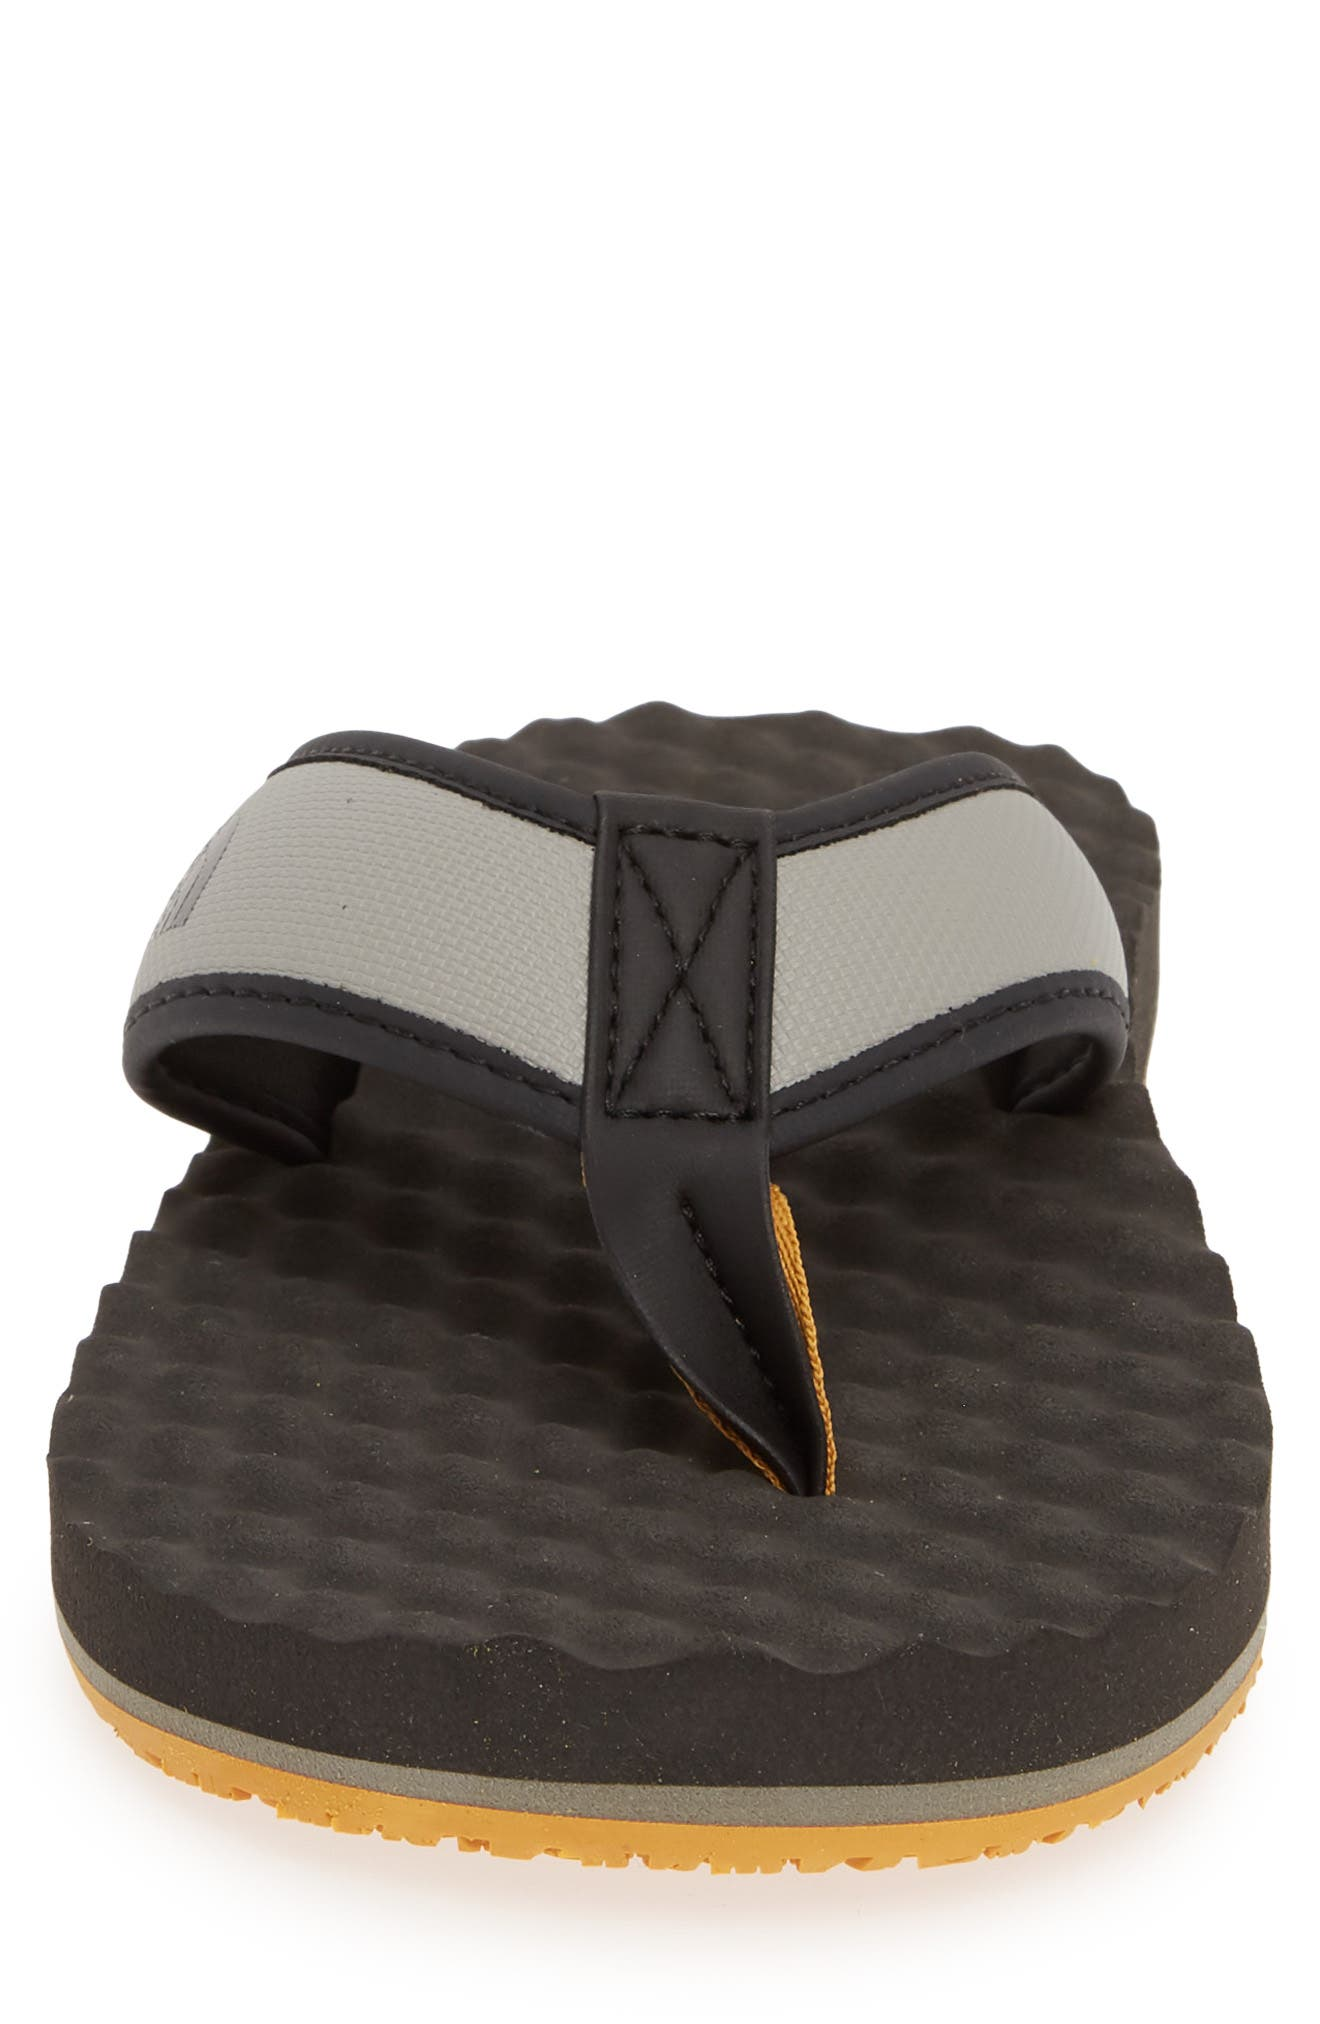 THE NORTH FACE, 'Base Camp' Water Friendly Flip Flop, Alternate thumbnail 4, color, 021